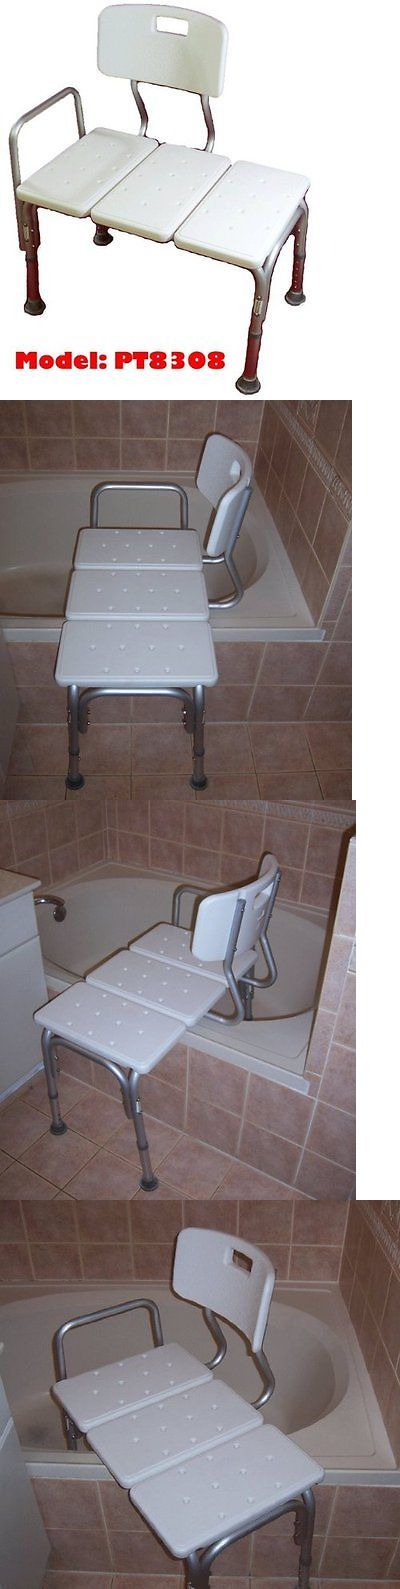 Transfer Boards and Benches: Medmobile® Bathtub Transfer Bench / Bath Chair With Back, Wide Seat, Adjustable BUY IT NOW ONLY: $76.62